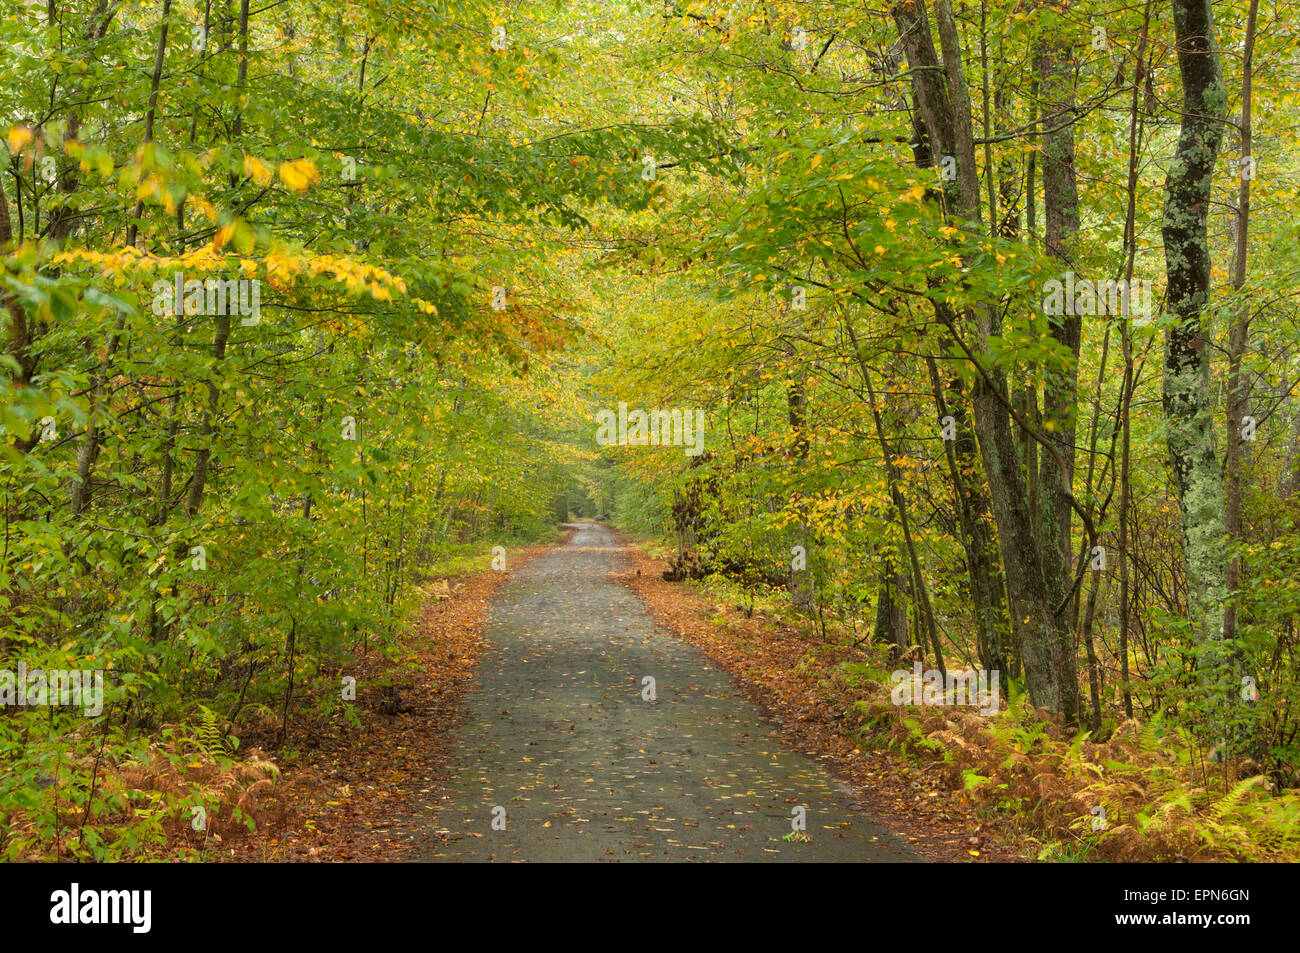 Forest road, James L Goodwin State Forest, Connecticut - Stock Image